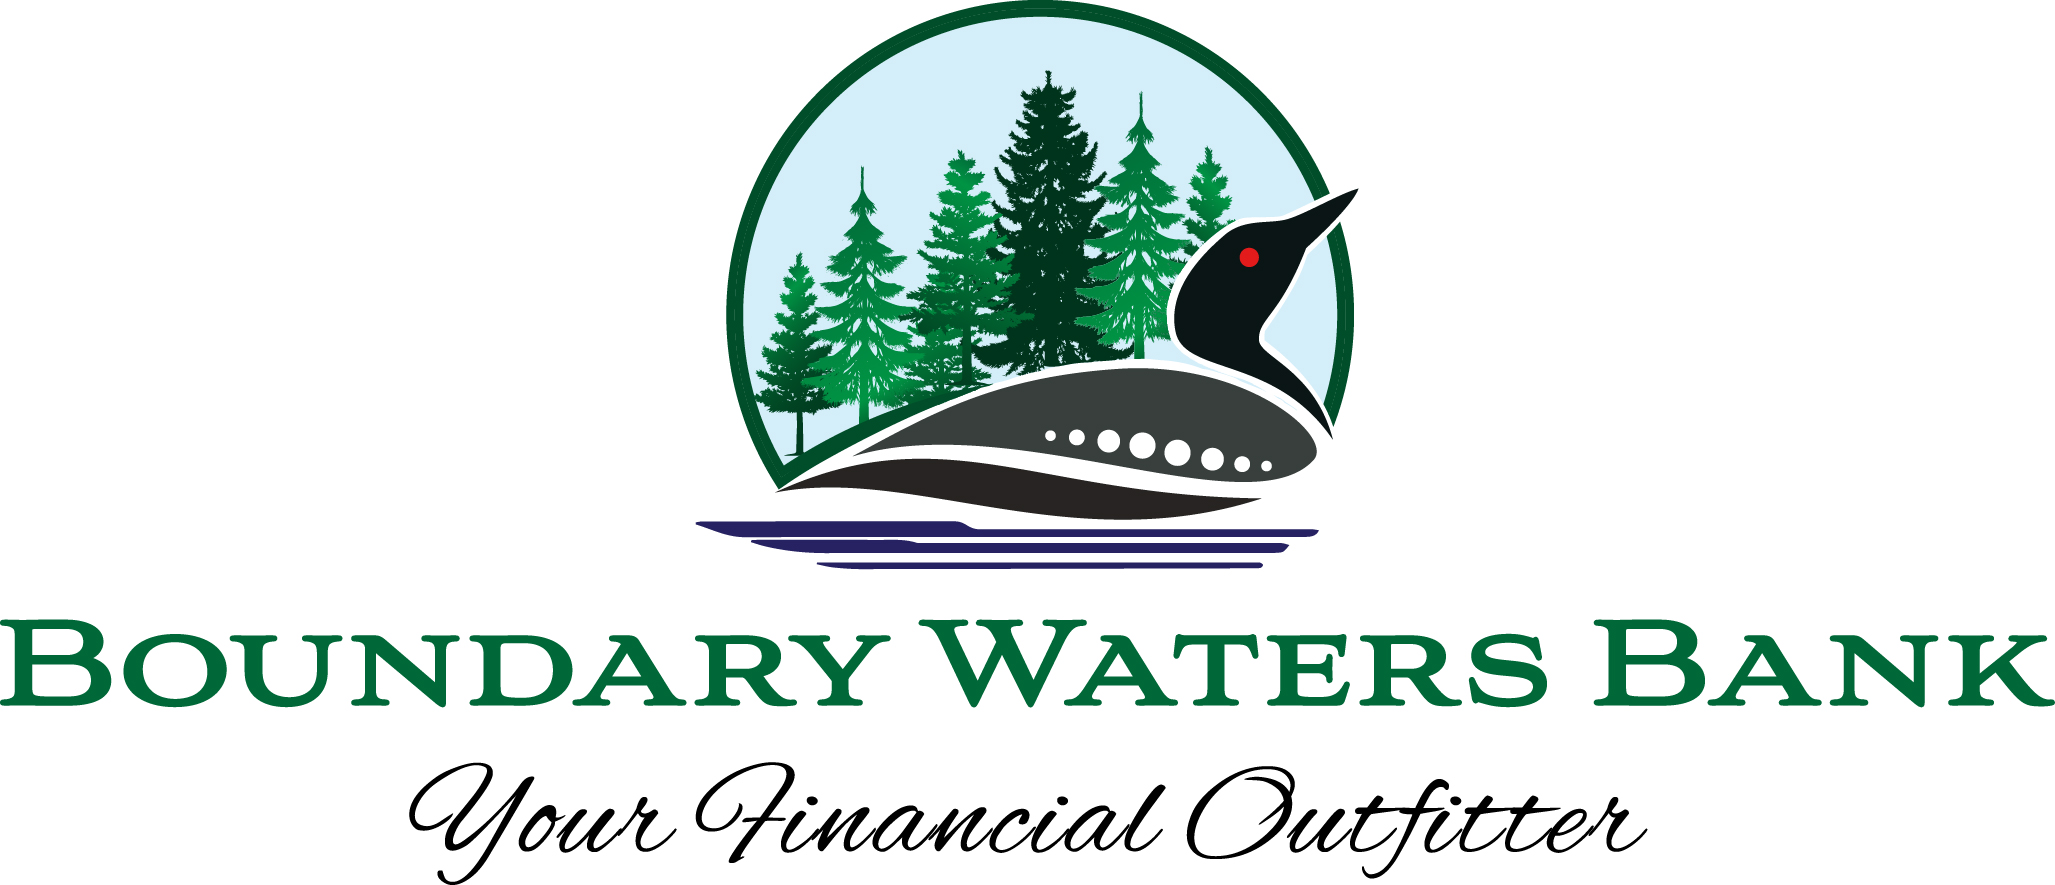 Boundary Waters Bank